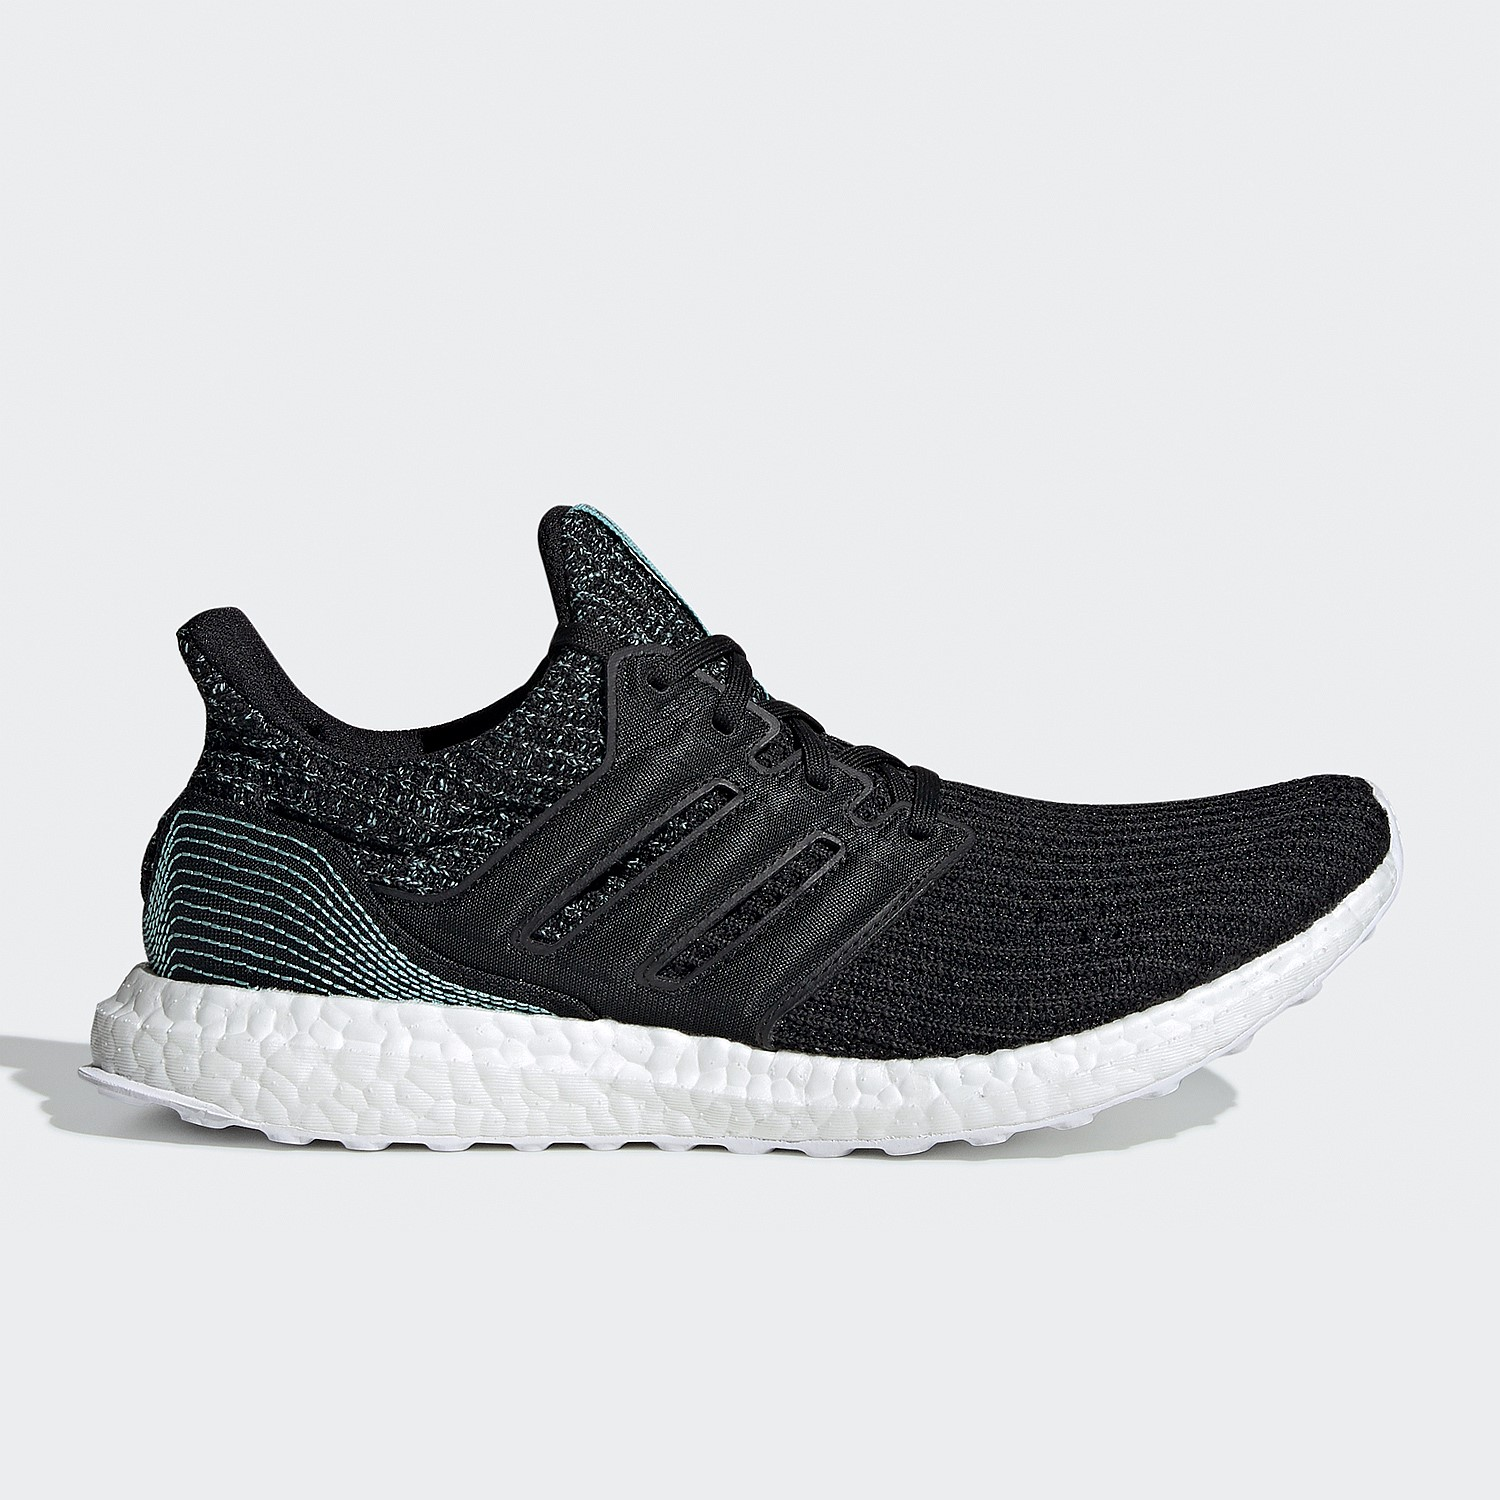 low priced f0873 8ef23 New Arrivals   Men s, Women s and Kid s New Arrivals Online   Stirling  Sports - Ultraboost Parley Mens